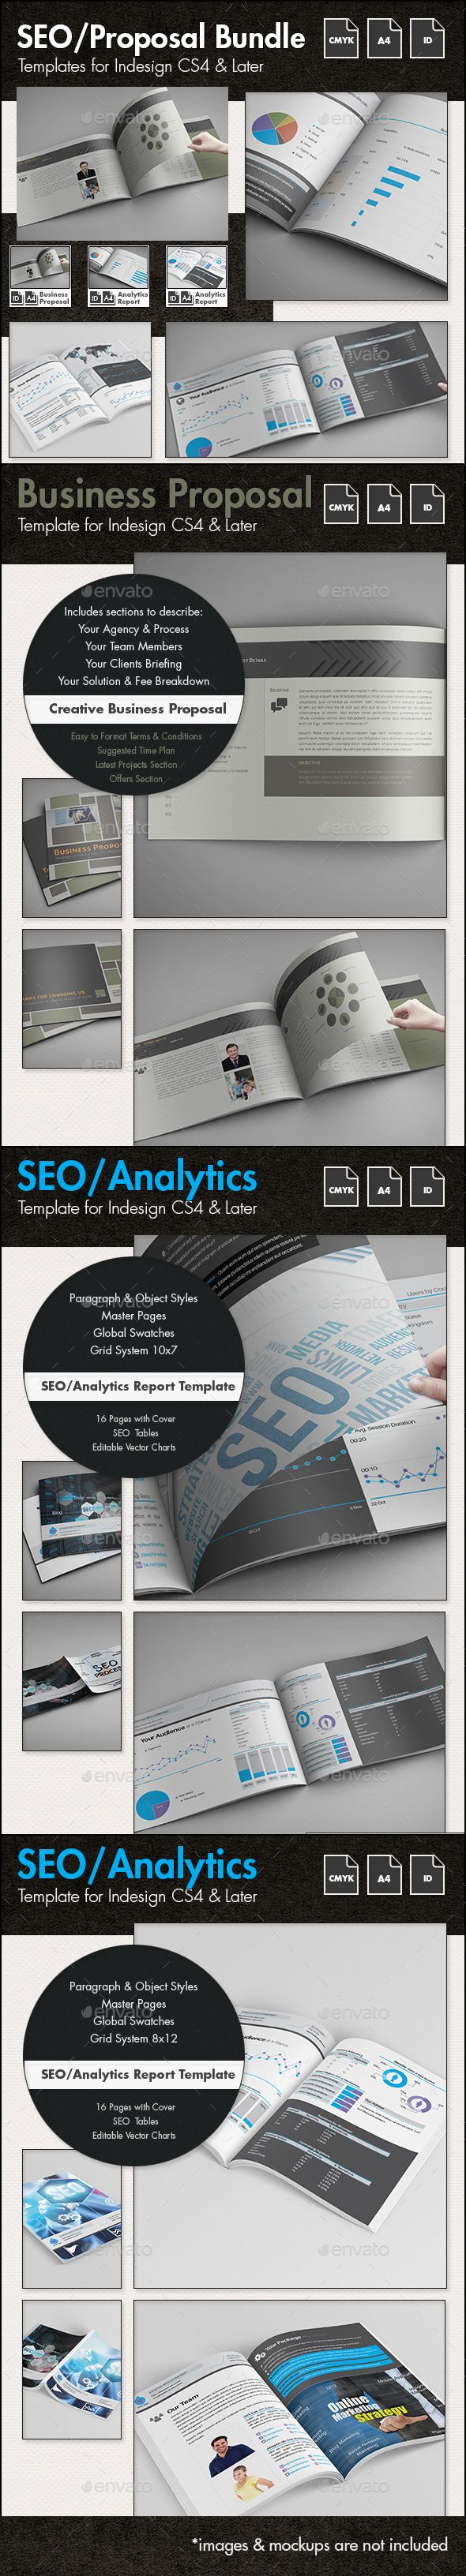 SEO Business Proposal Templates Bundle 249